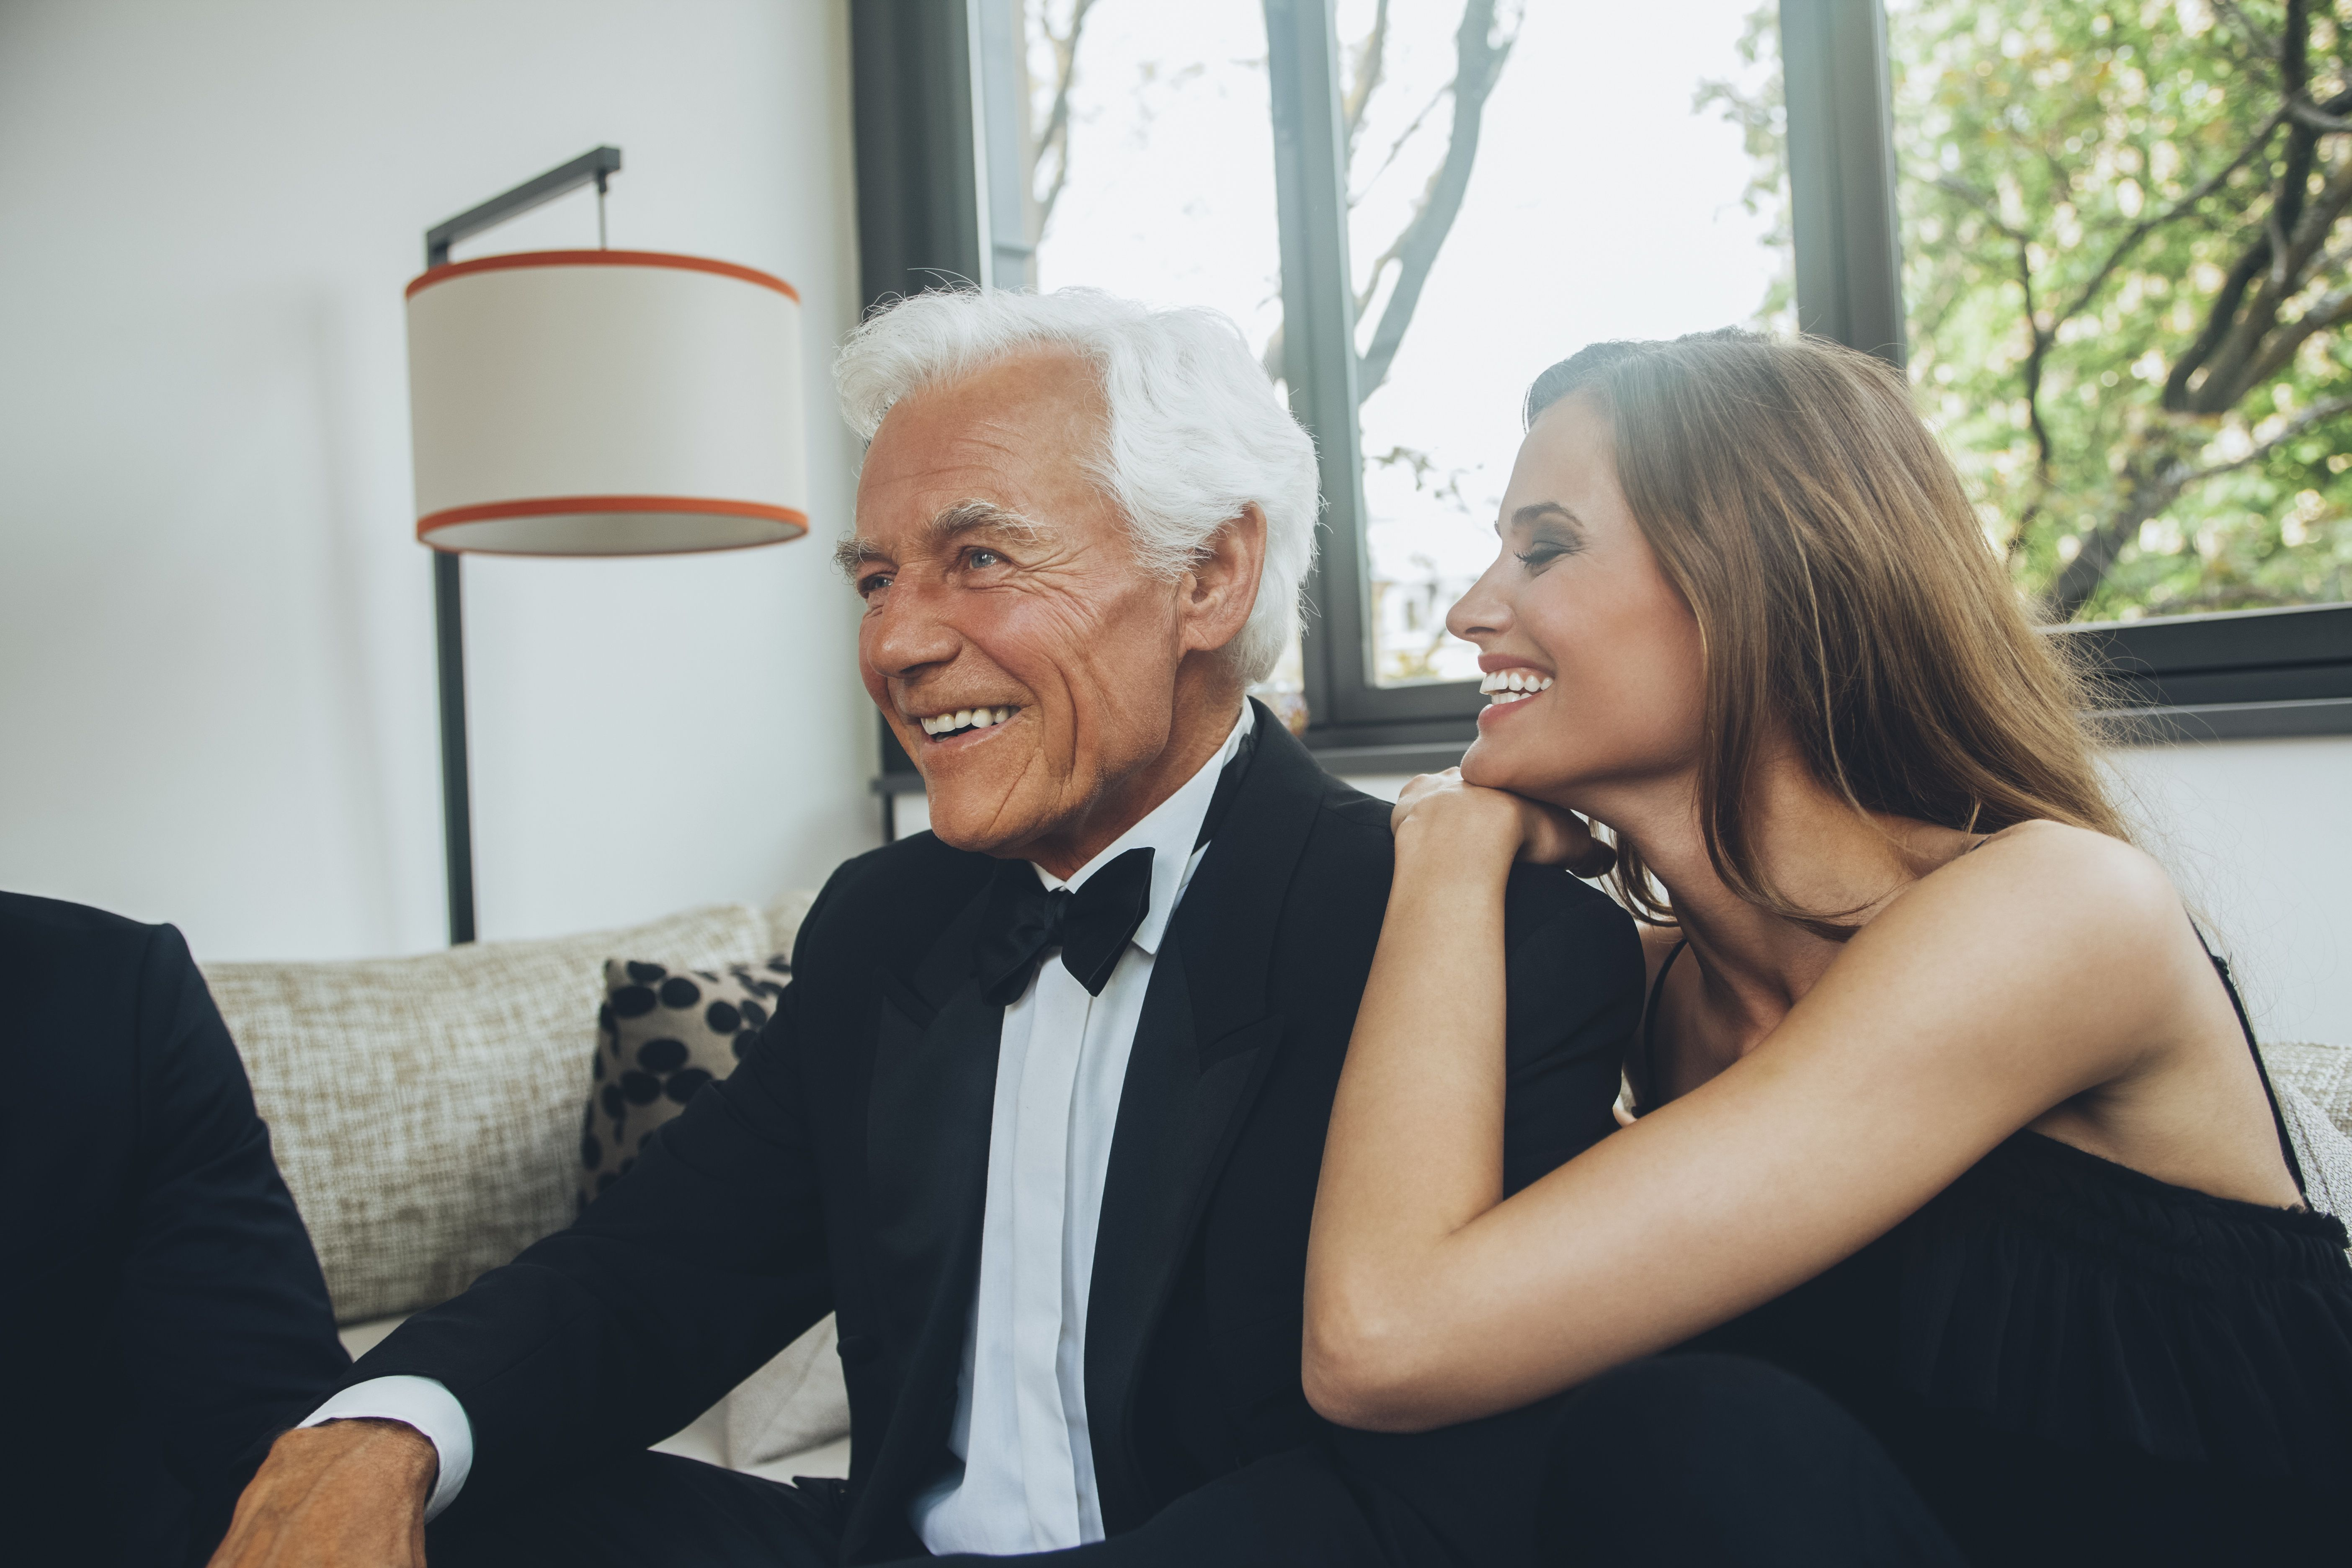 Hookup a man 20 years older than you